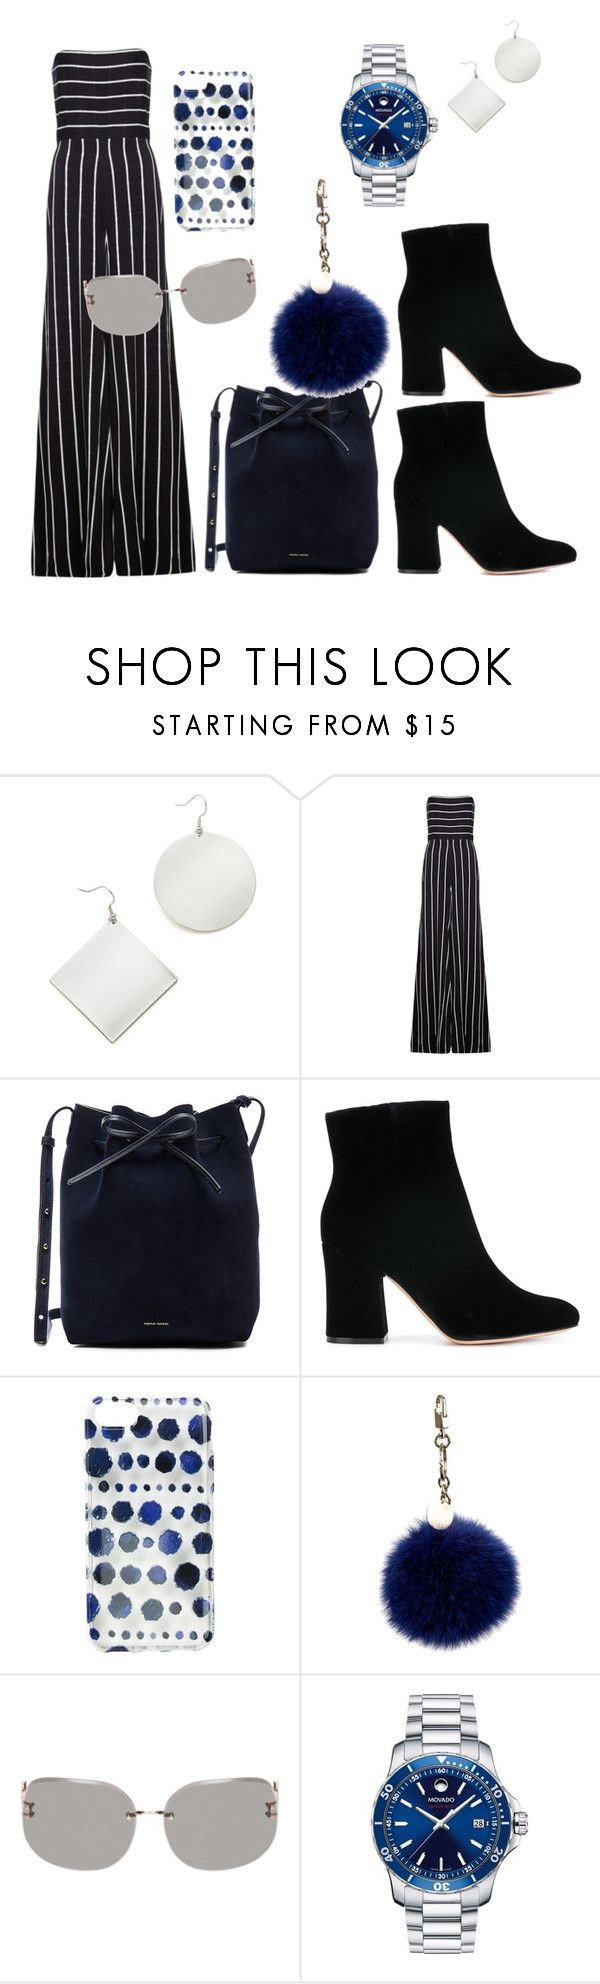 """Untitled #239"" by christiana-hickman on Polyvore featuring Kenneth Jay Lane, Safiyaa, Mansur Gavriel, Gianvito Rossi, Ankit, ESCADA, Linda Farrow and Movado"